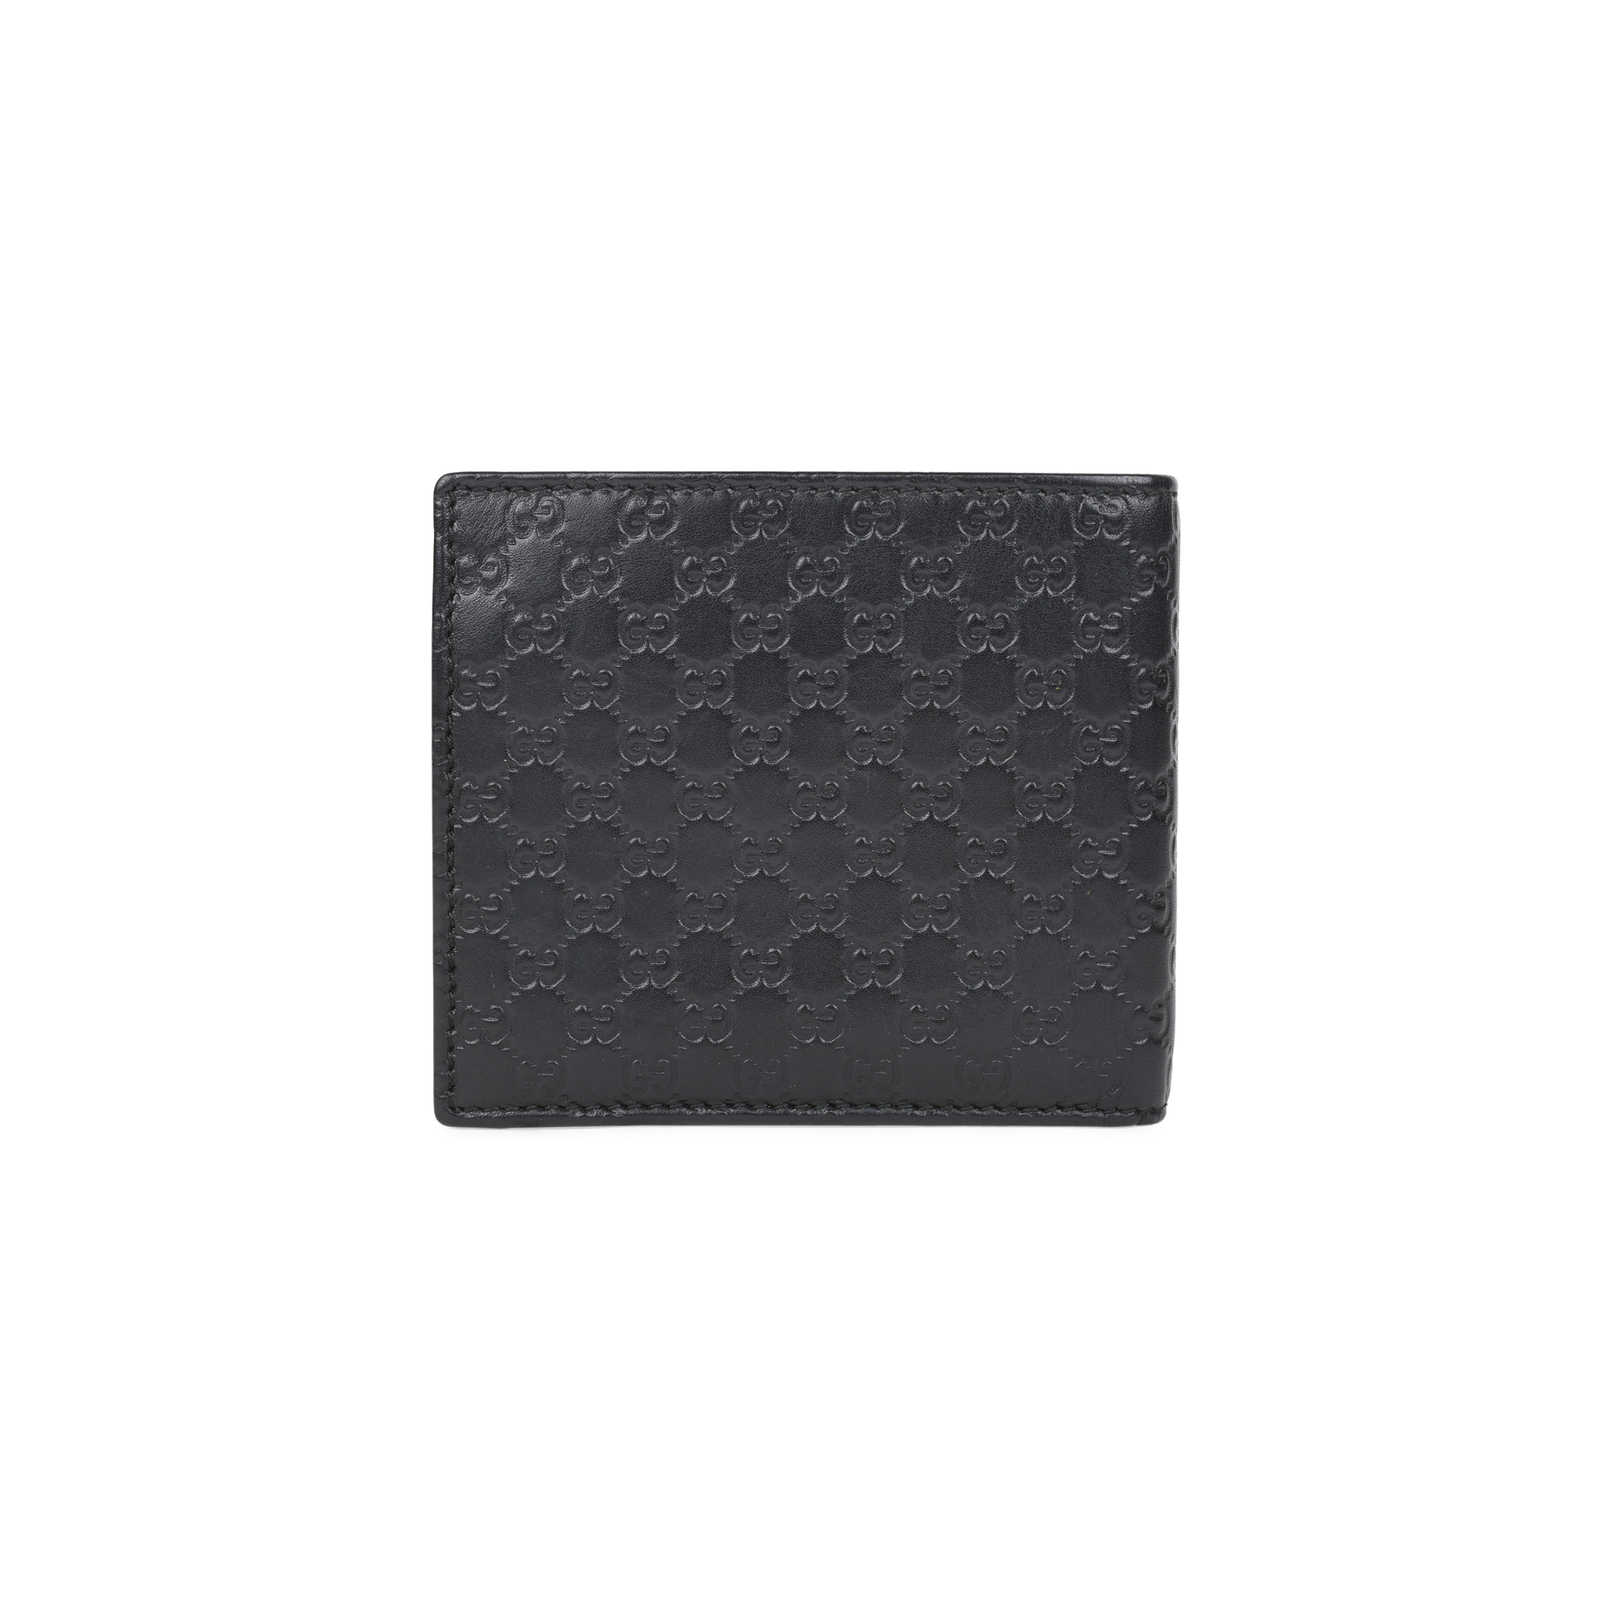 75bced239b2 ... Authentic Second Hand Gucci Microguccissima Leather Wallet With Coin  Pocket (PSS-394-00022 ...